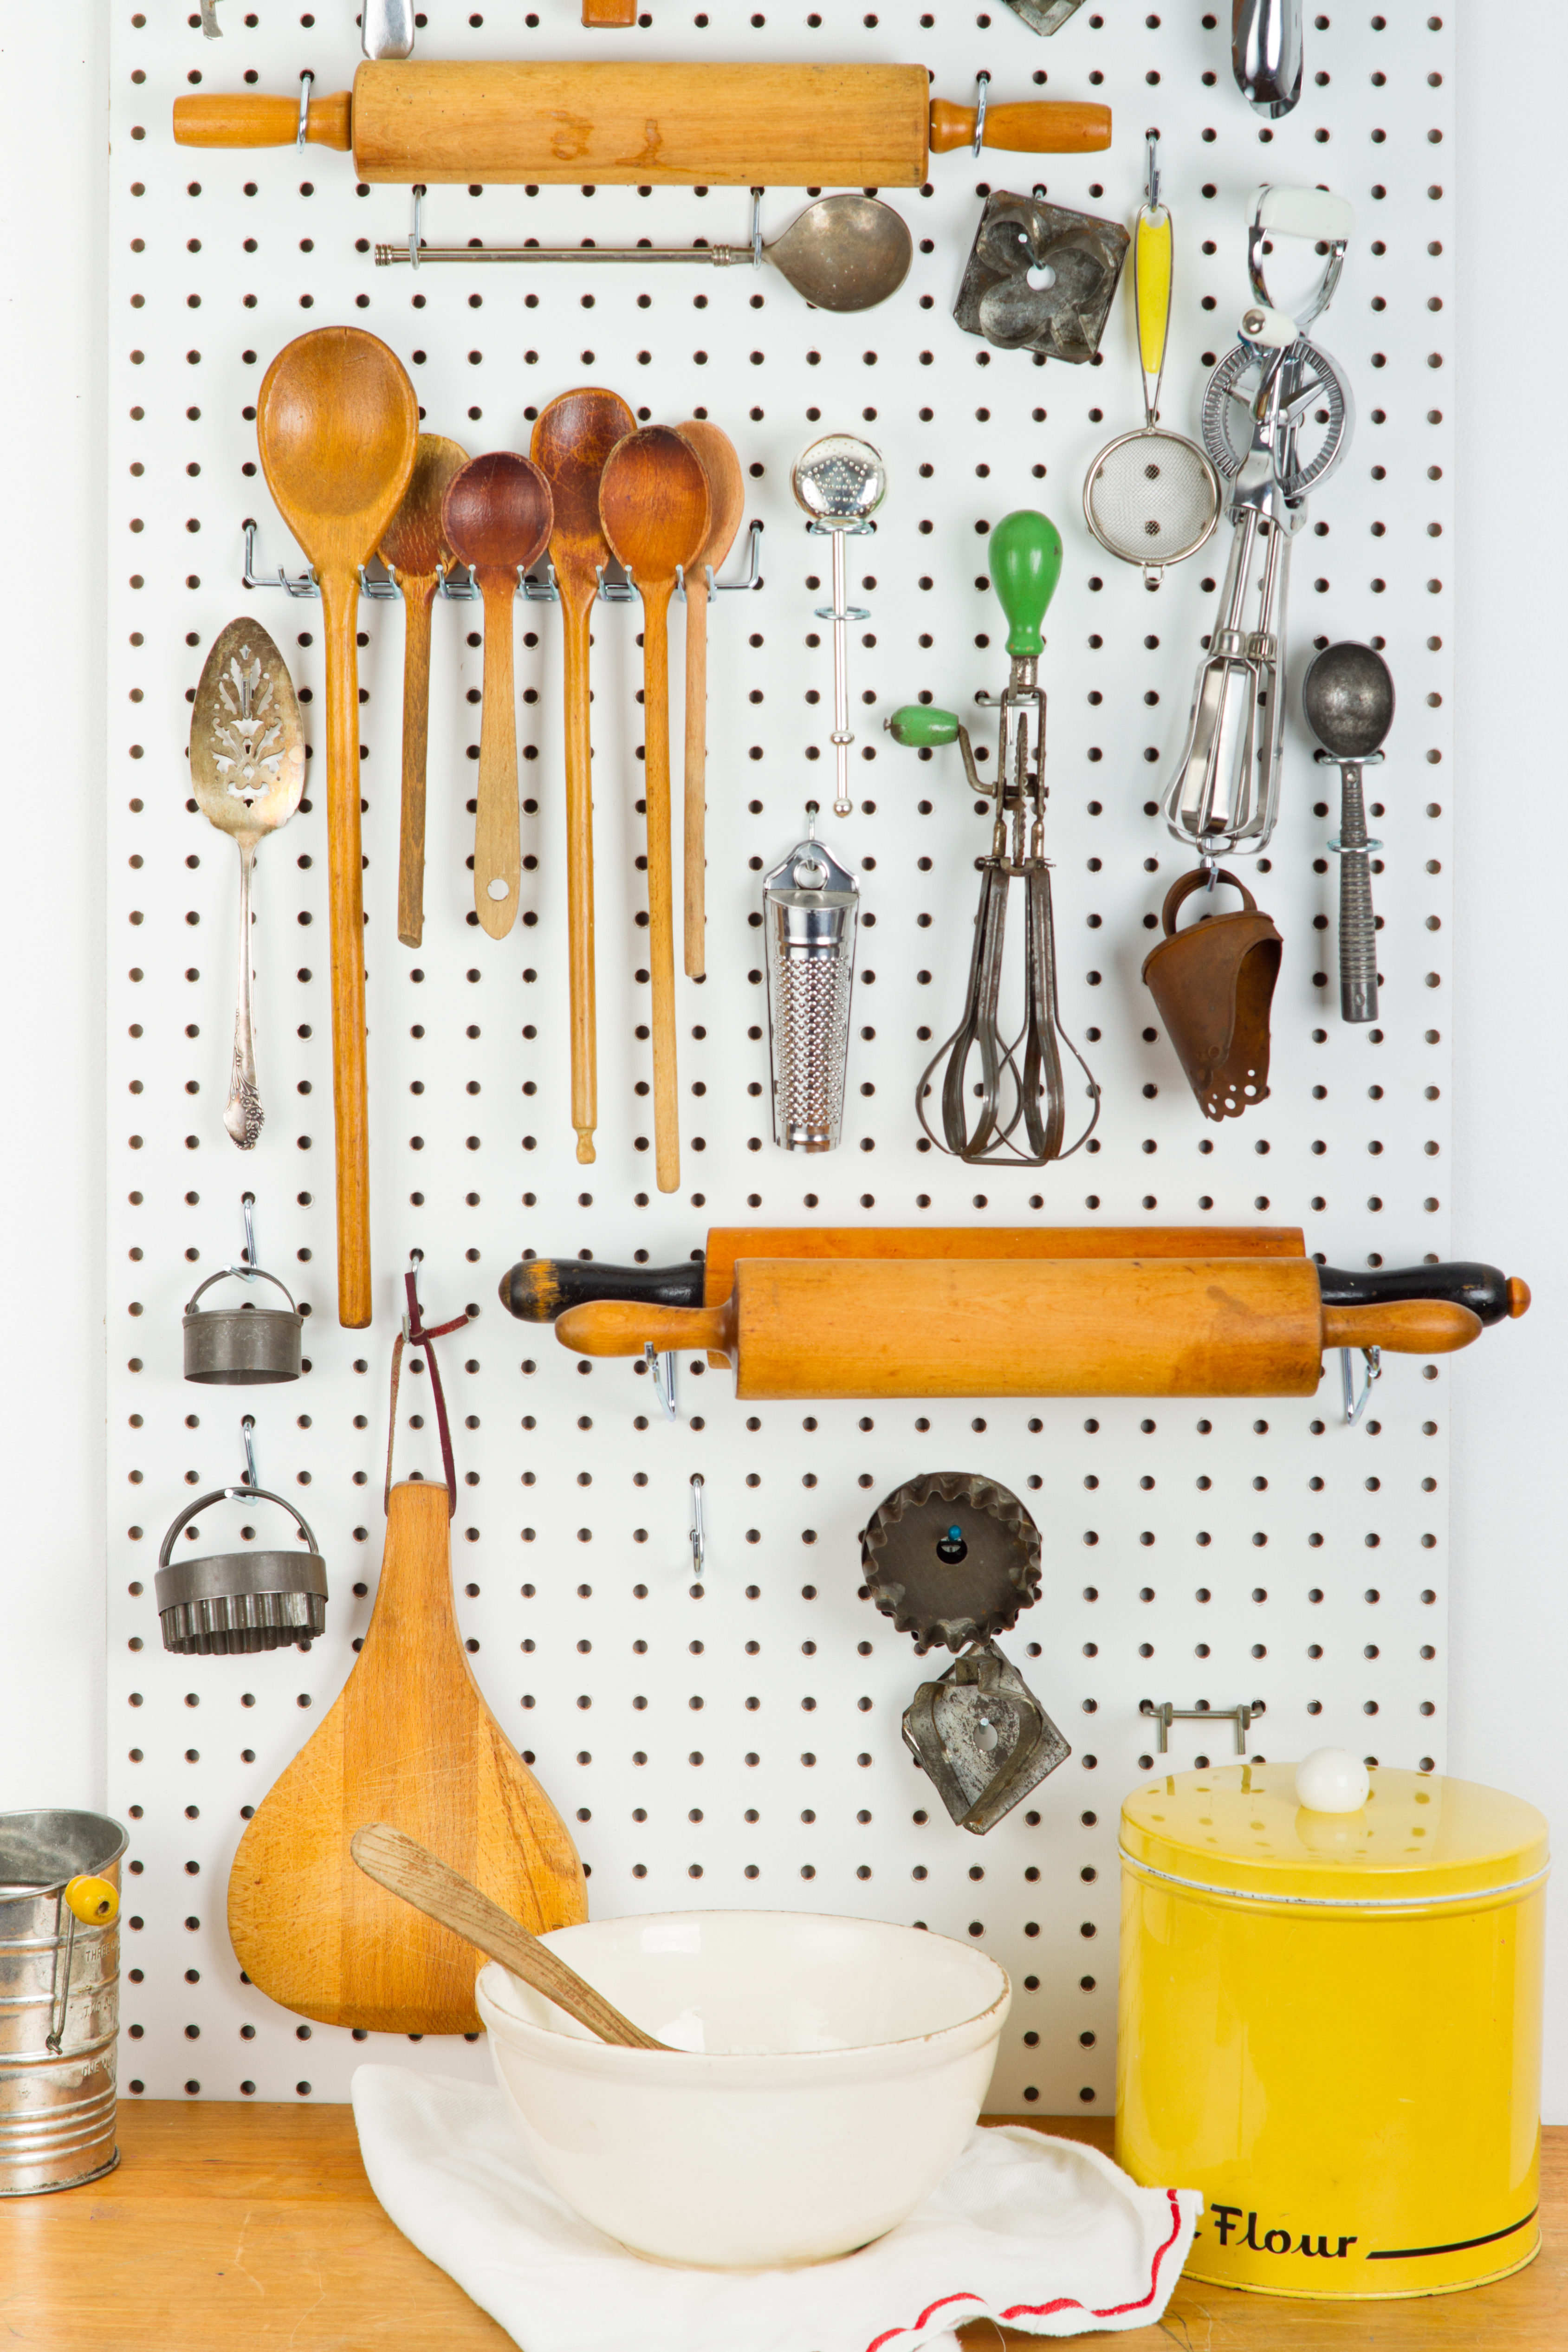 Pegboard Filled with Old Cooking Gadgets In front of a counter with baking supplies [url=file_closeup.php?id=16849646][img]file_thumbview_approve.php?size=1&id=16849646[/img][/url] [url=file_closeup.php?id=16845553][img]file_thumbview_approve.php?size=1&id=16845553[/img][/url] [url=file_closeup.php?id=16845544][img]file_thumbview_approve.php?size=1&id=16845544[/img][/url] [url=file_closeup.php?id=16845467][img]file_thumbview_approve.php?size=1&id=16845467[/img][/url] [url=file_closeup.php?id=16849580][img]file_thumbview_approve.php?size=1&id=16849580[/img][/url]